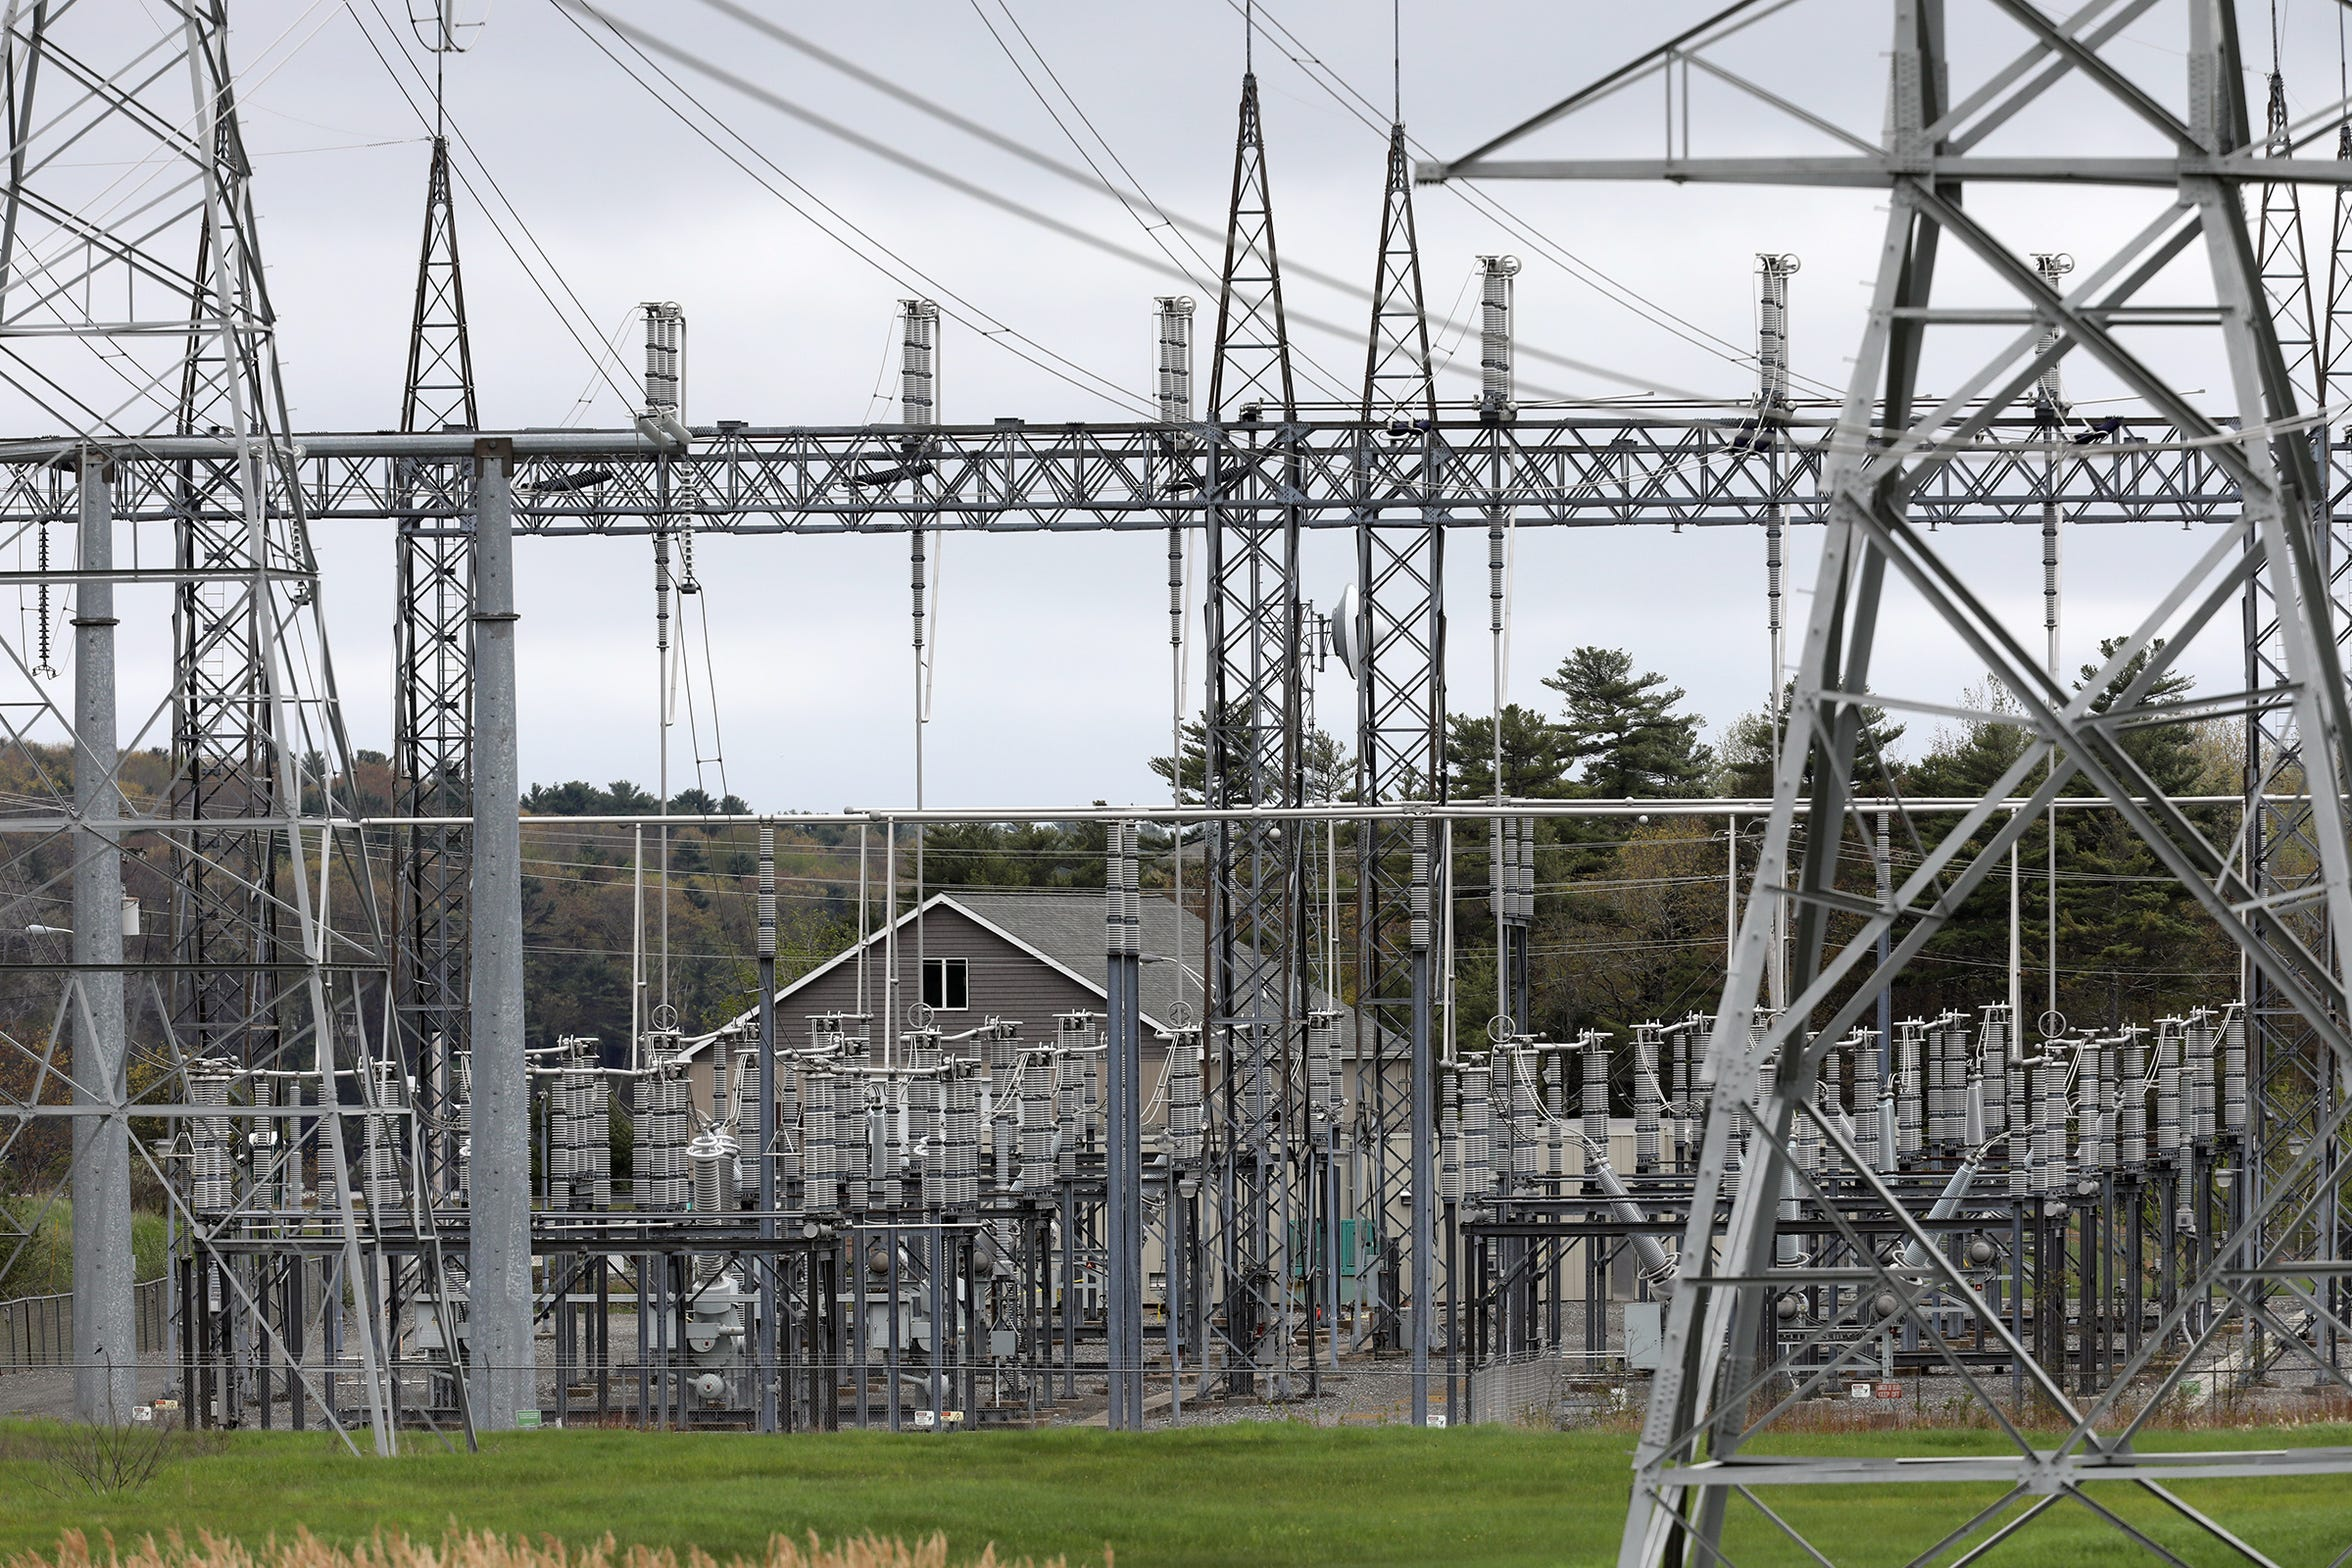 Transmission lines on the Maine Yankee property in Wiscasset, Maine, photographed on Friday, May 24, 2019.